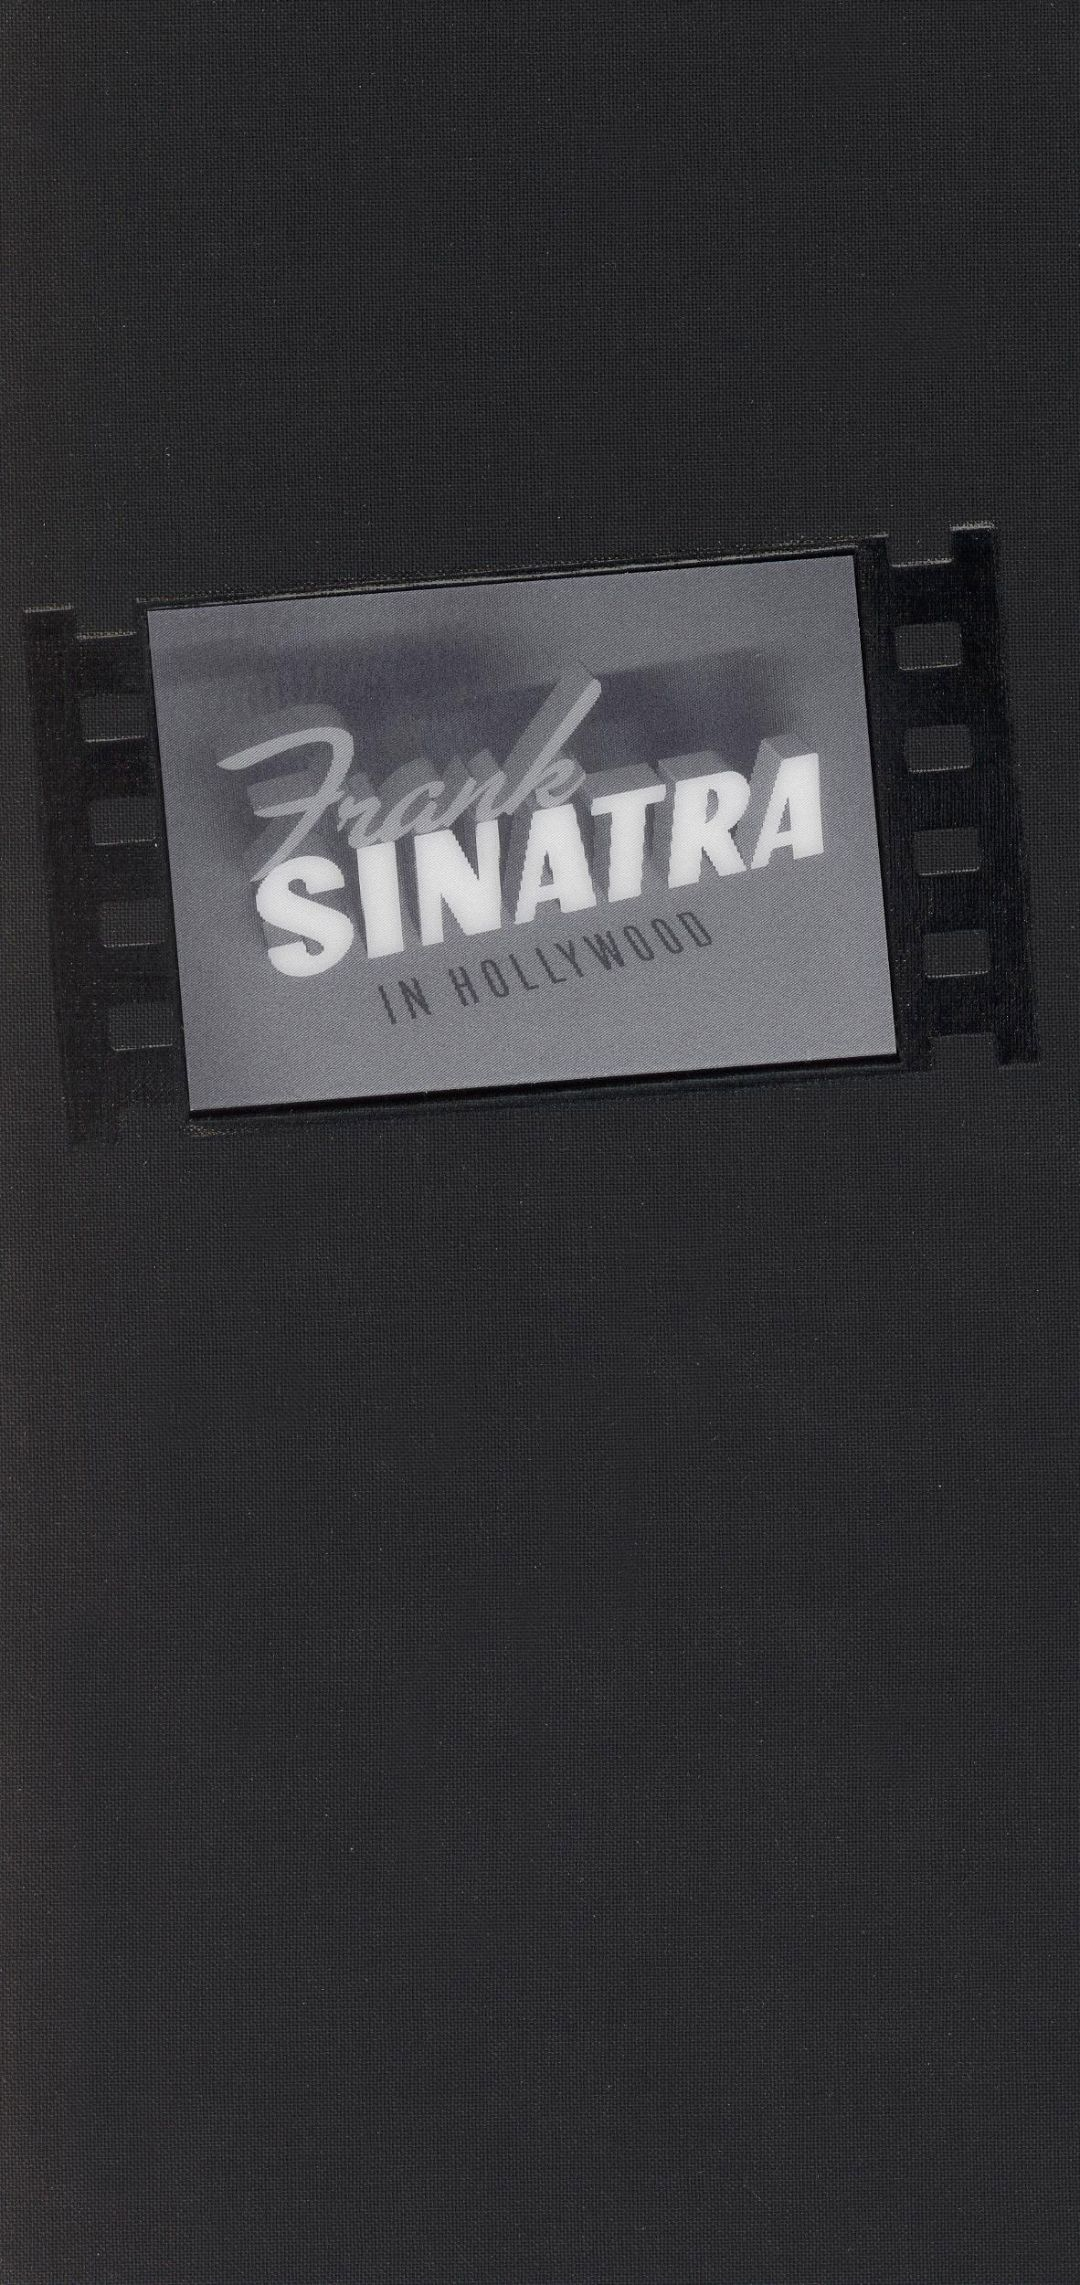 Sinatra in Hollywood 1940-1964